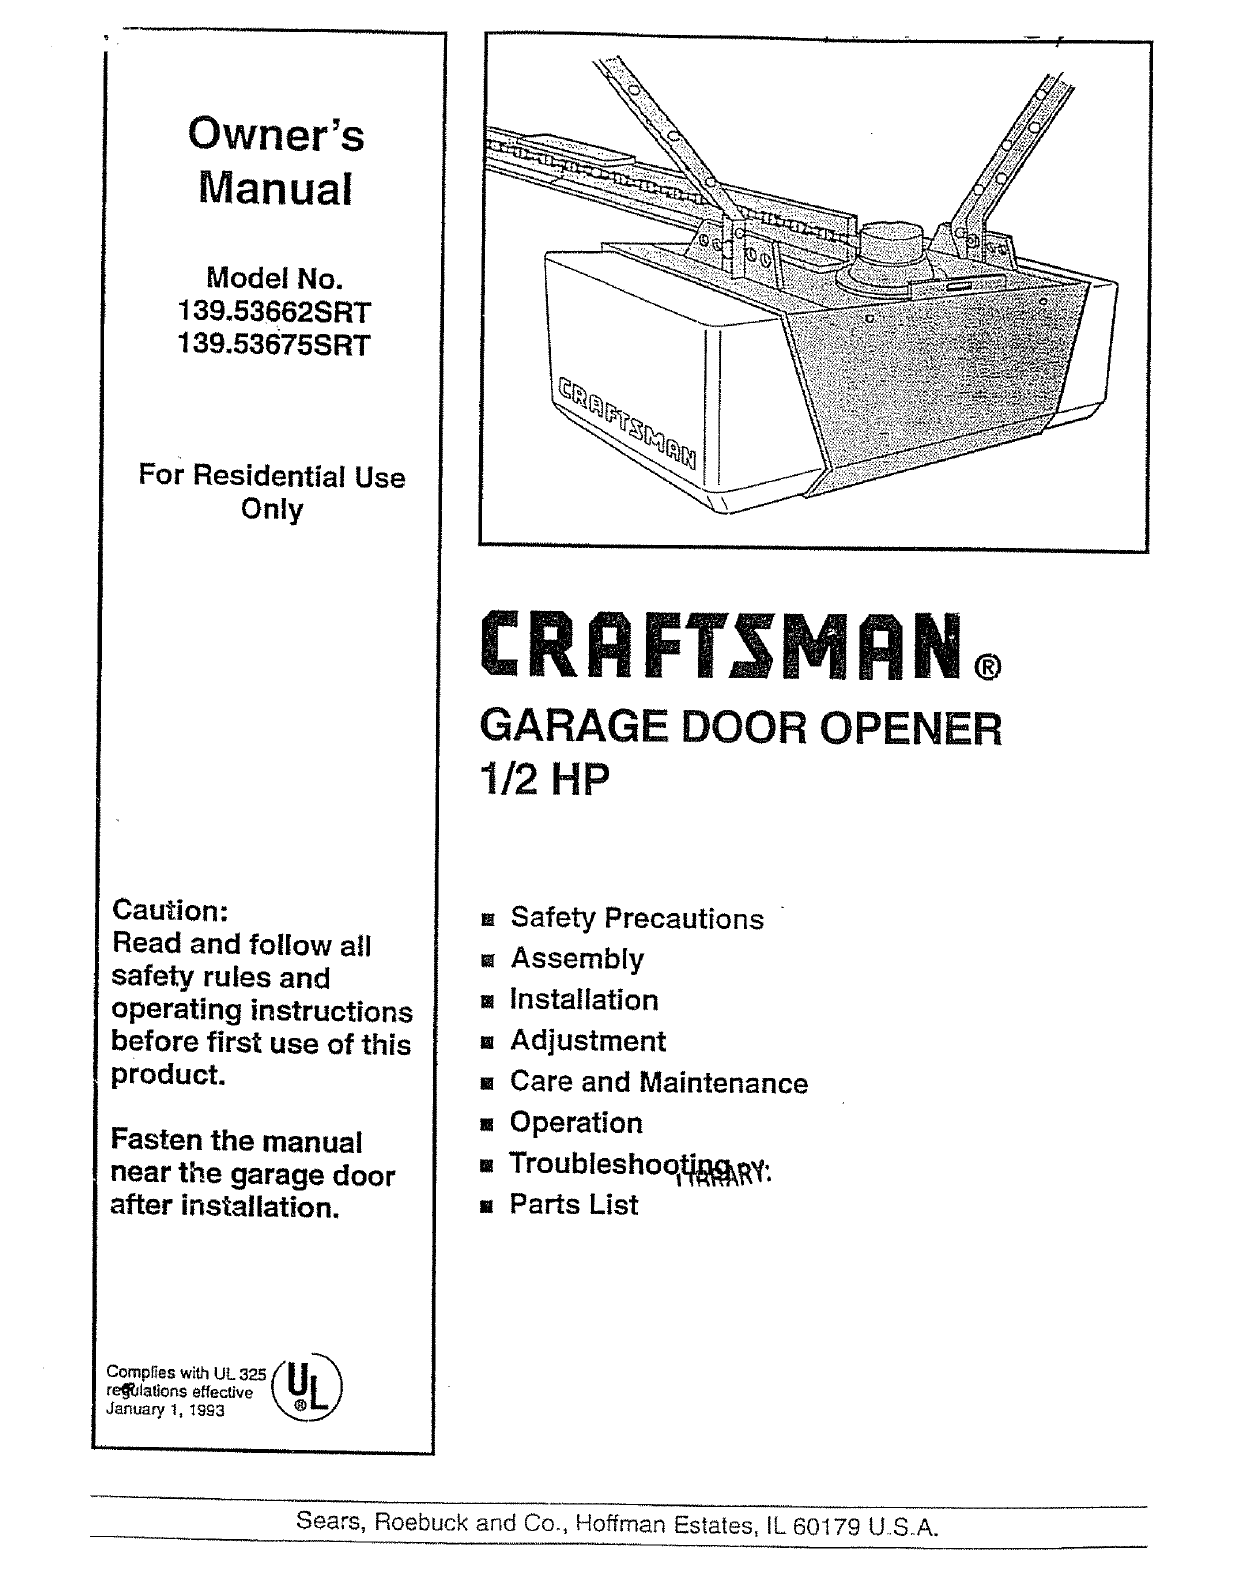 Craftsman Garage Door Opener 139 53675srt User Guide